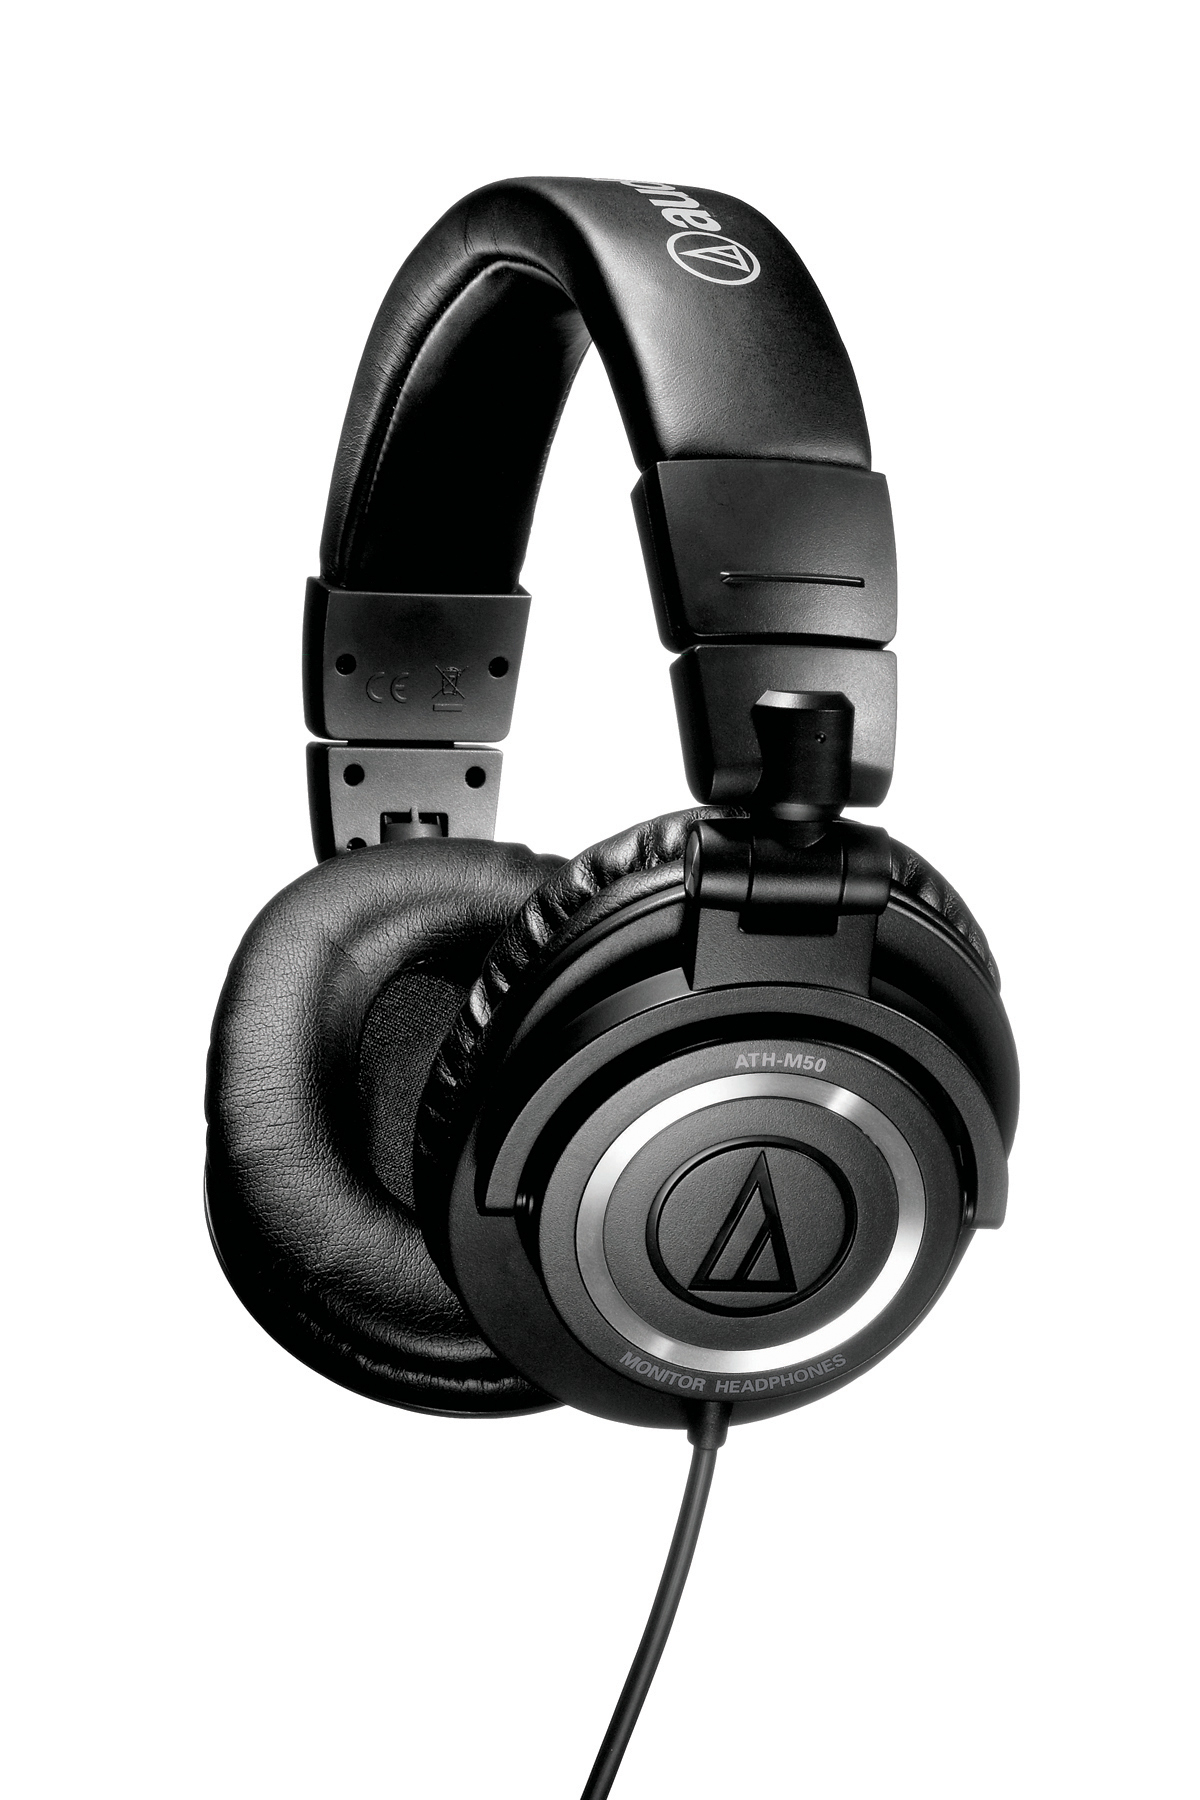 Audio Technica ATH-M50S Professional Studio Monitor Headphones with Straight Cable - Limited Quanities!